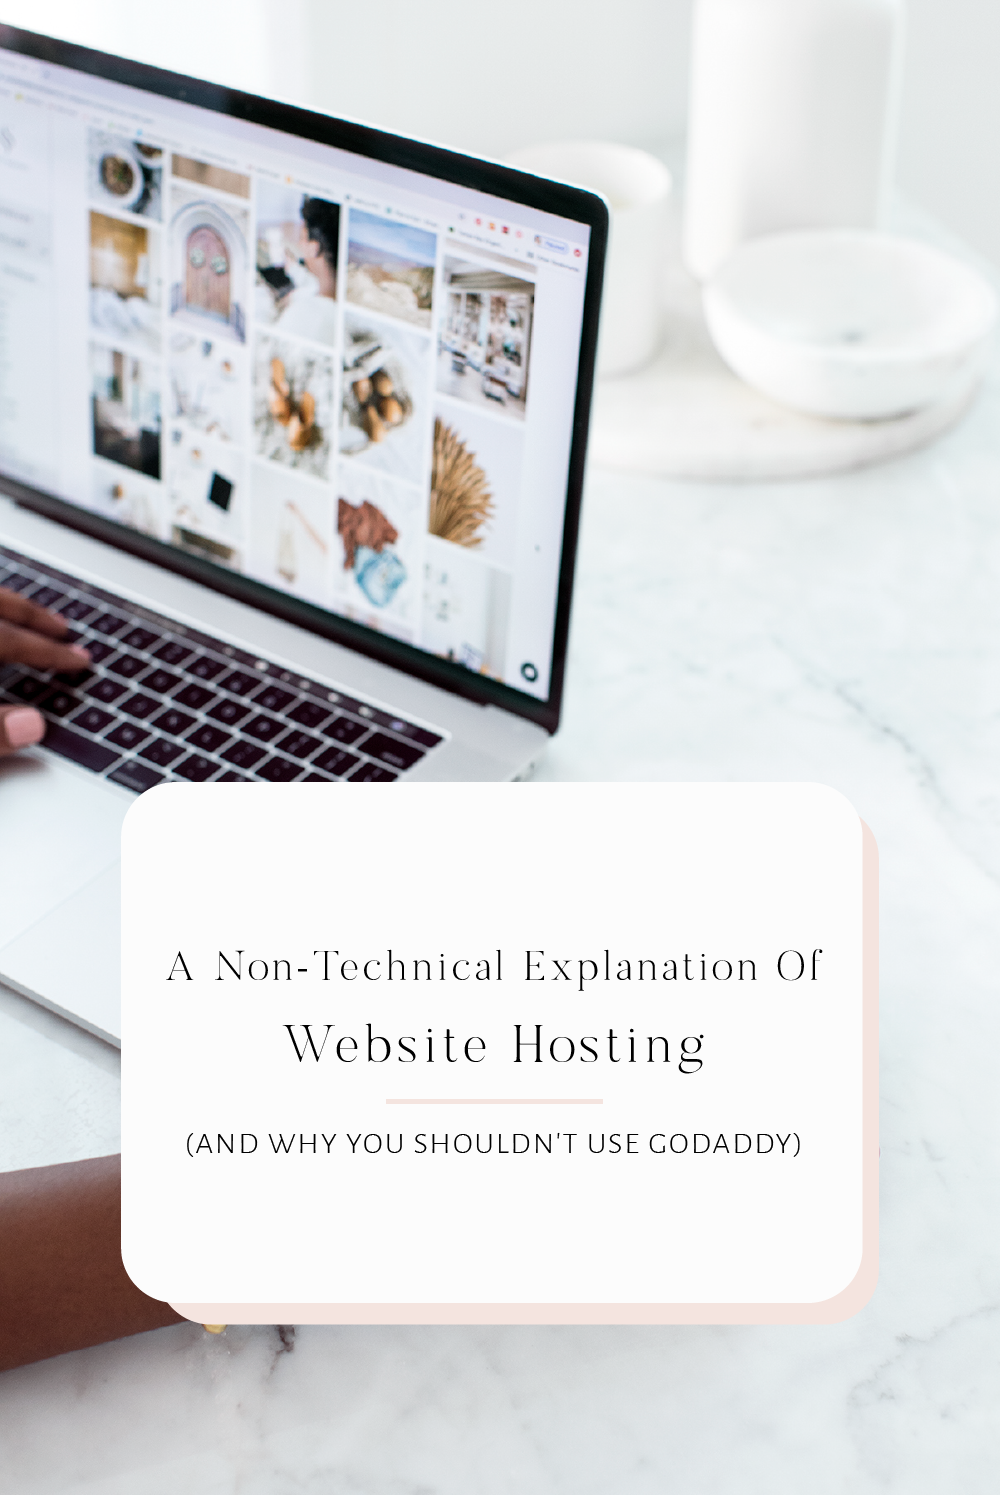 Website Hosting Explained For Non-Techies